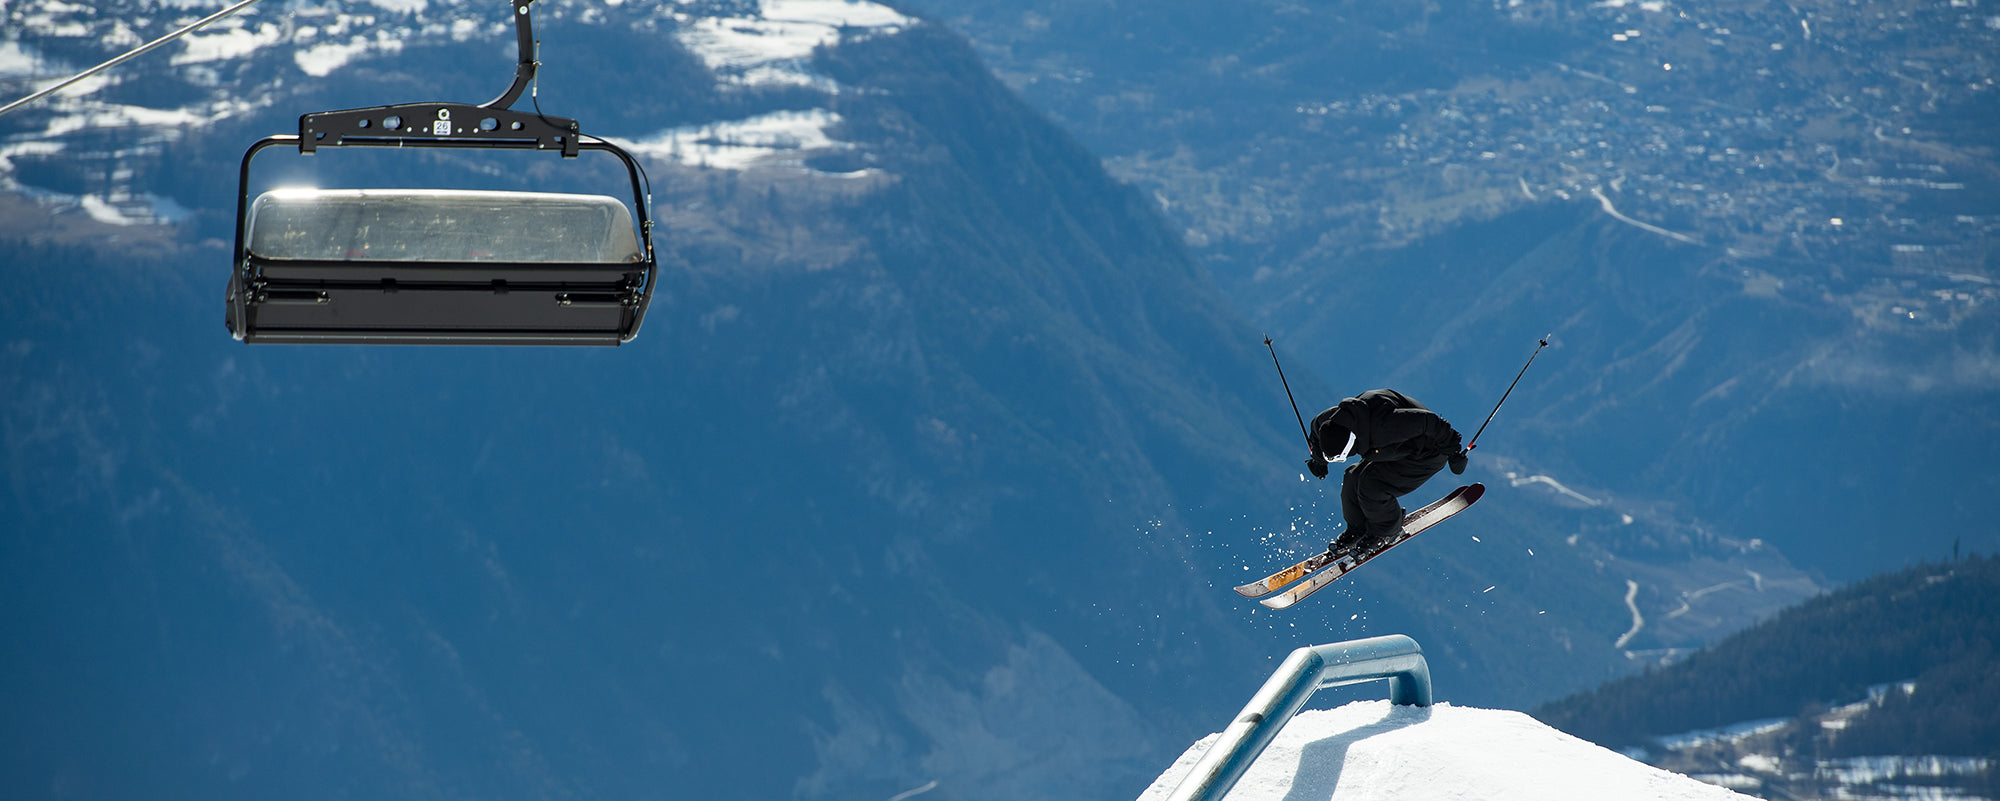 Candide Thovex lifestyle